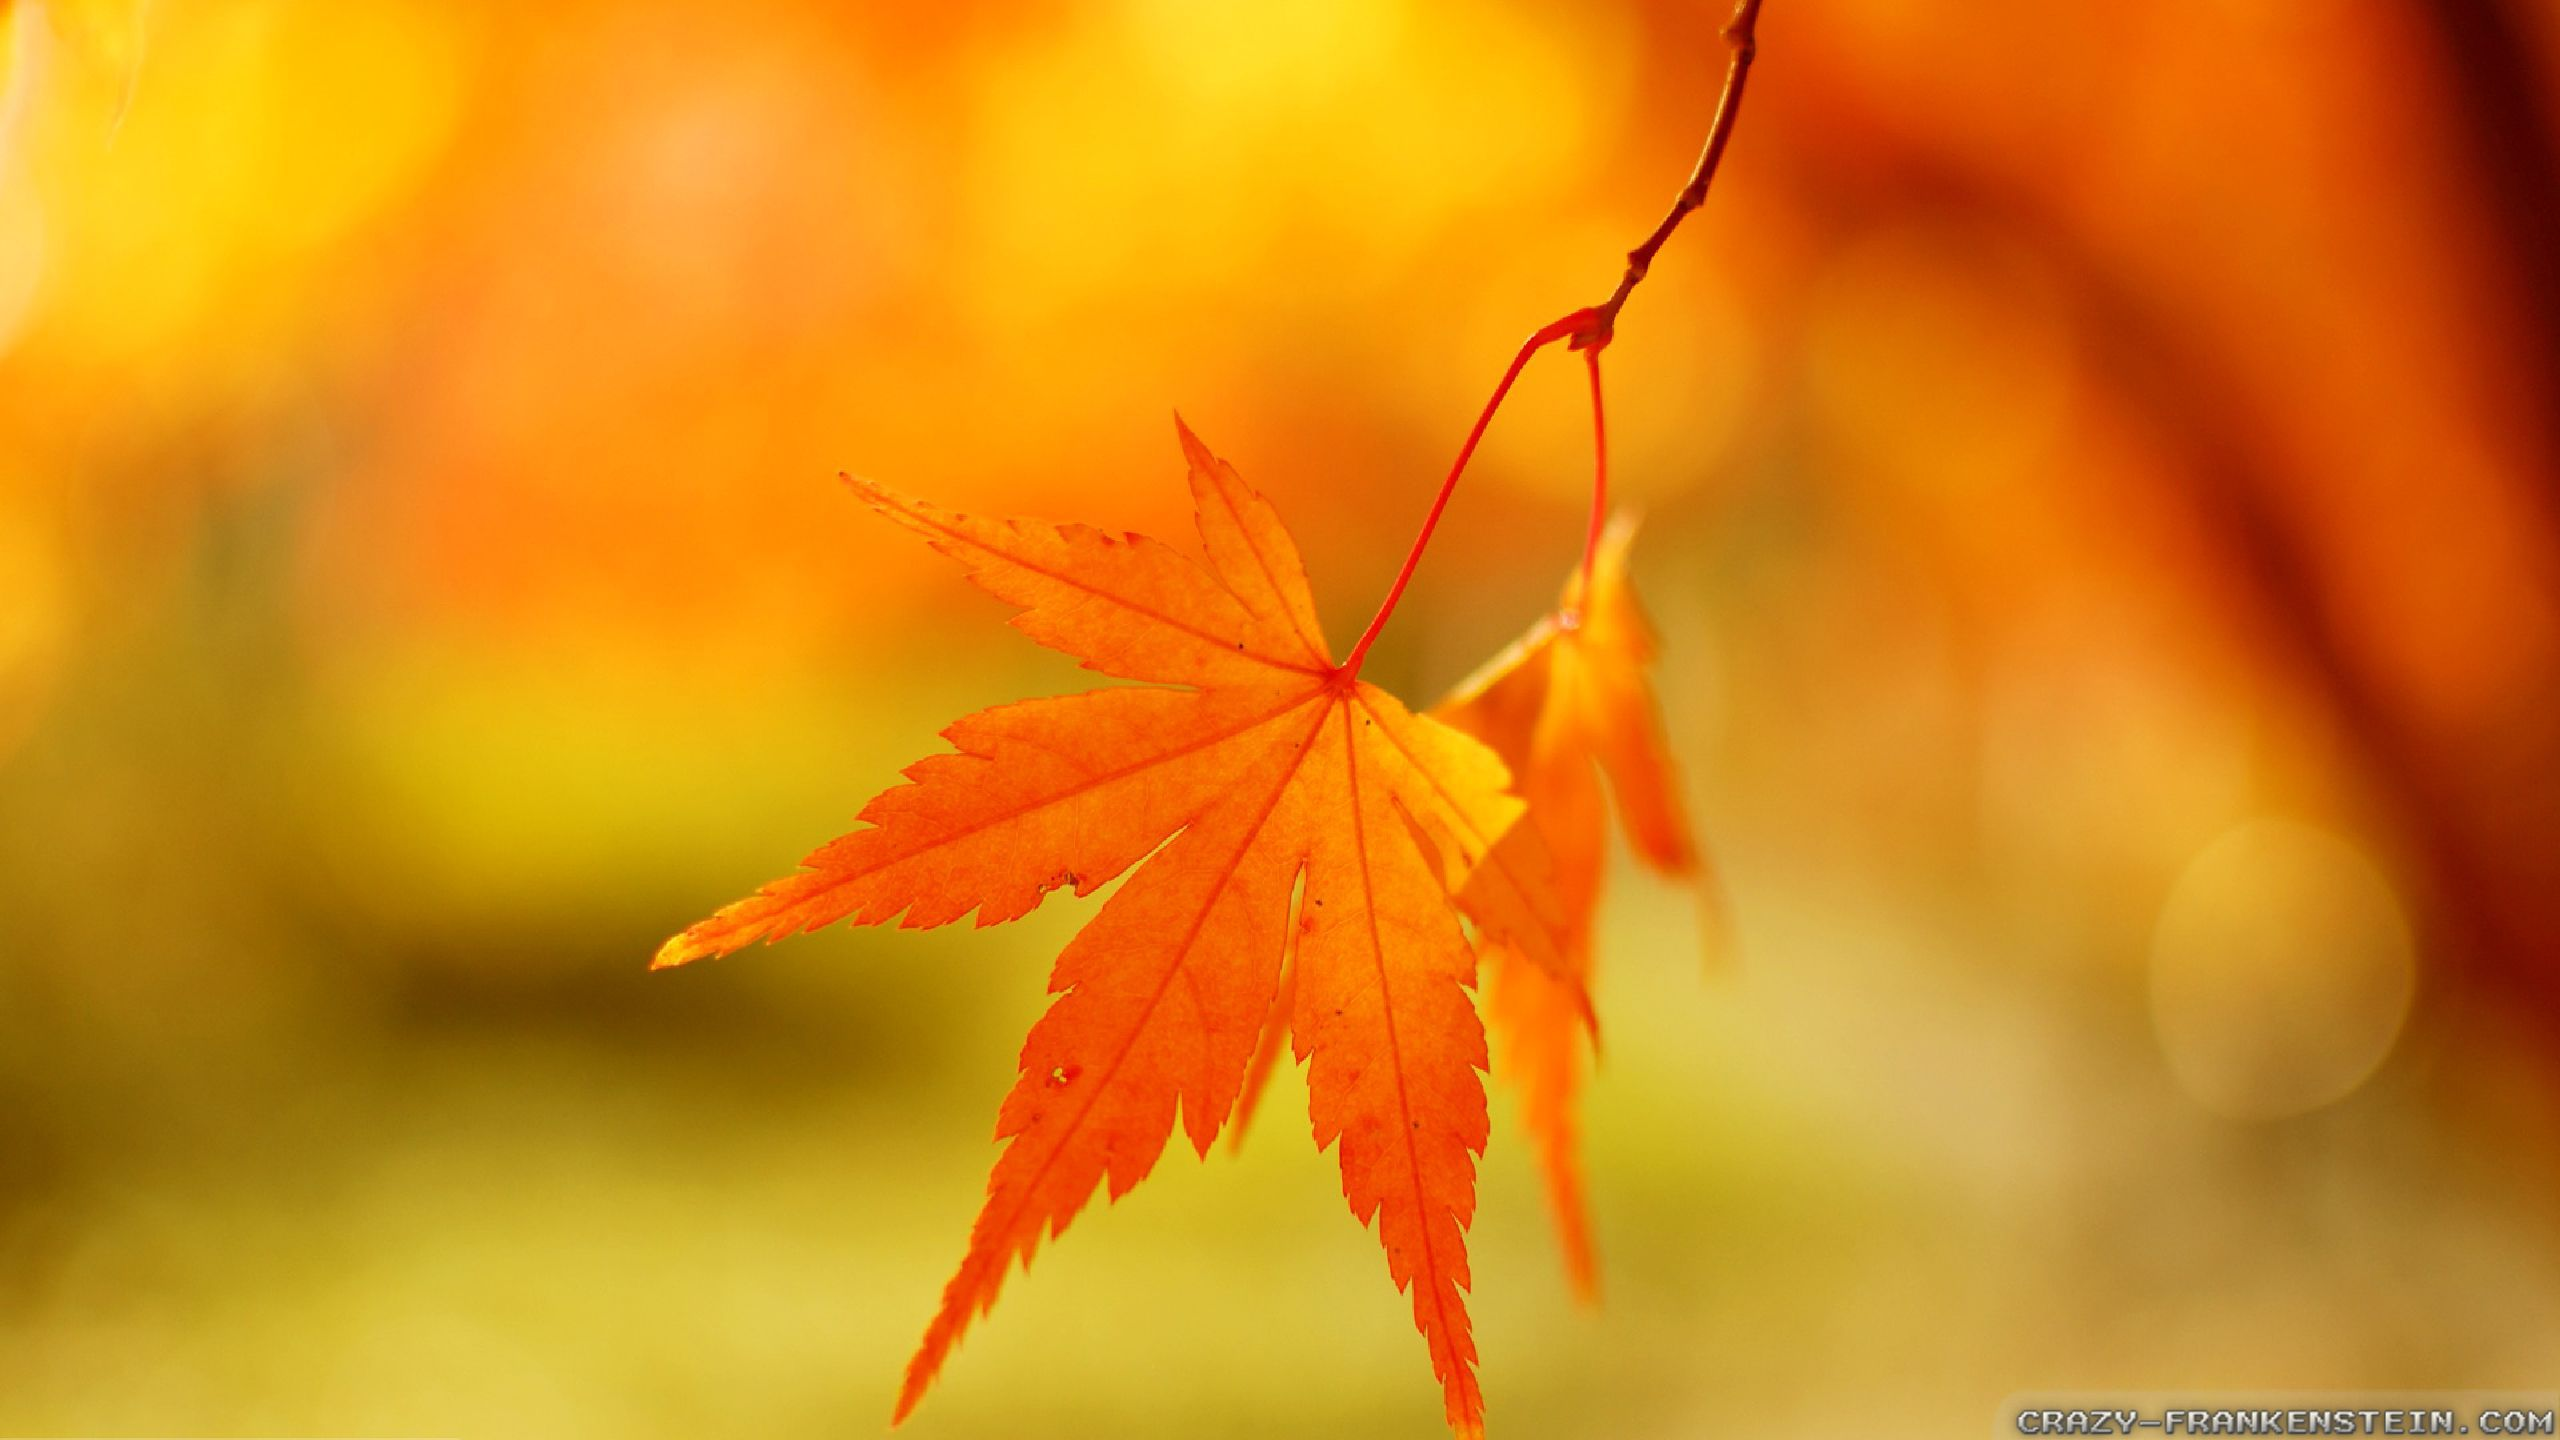 cool-color-autumn-leaf-wallpapers-2560x1440.jpg